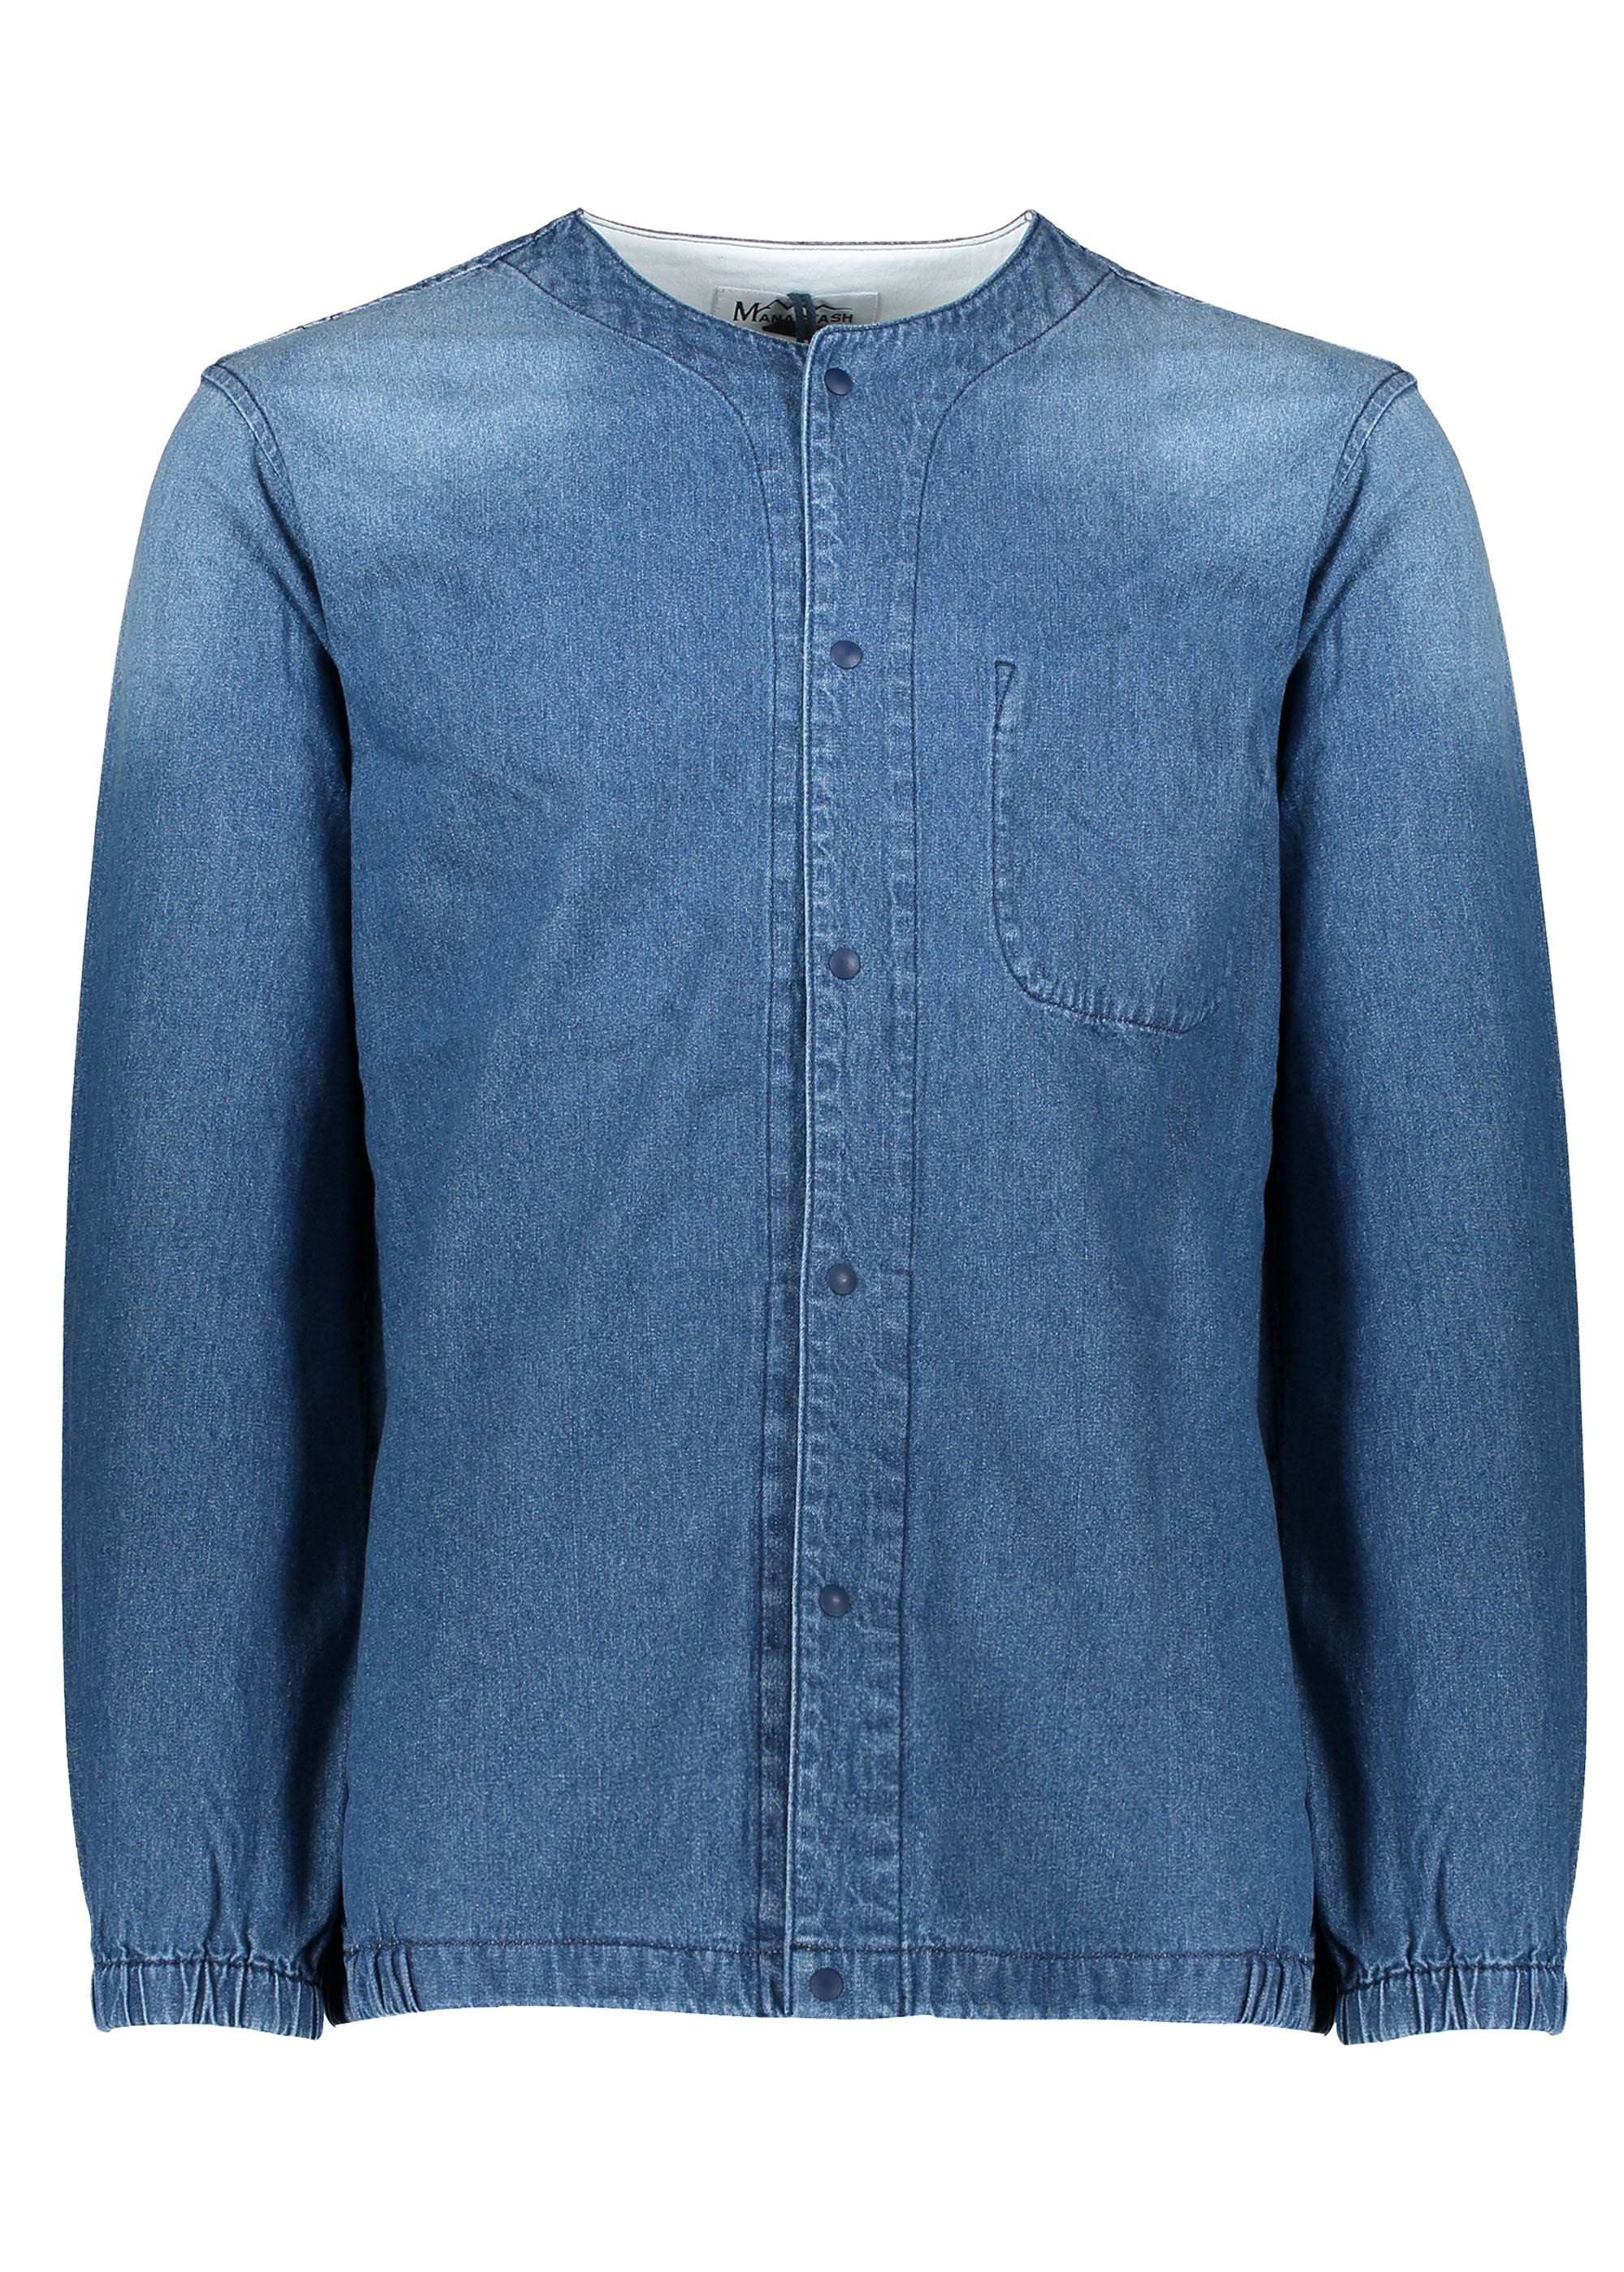 475b4c8e Manastash OD Layer III - Indigo - Jackets from Triads UK